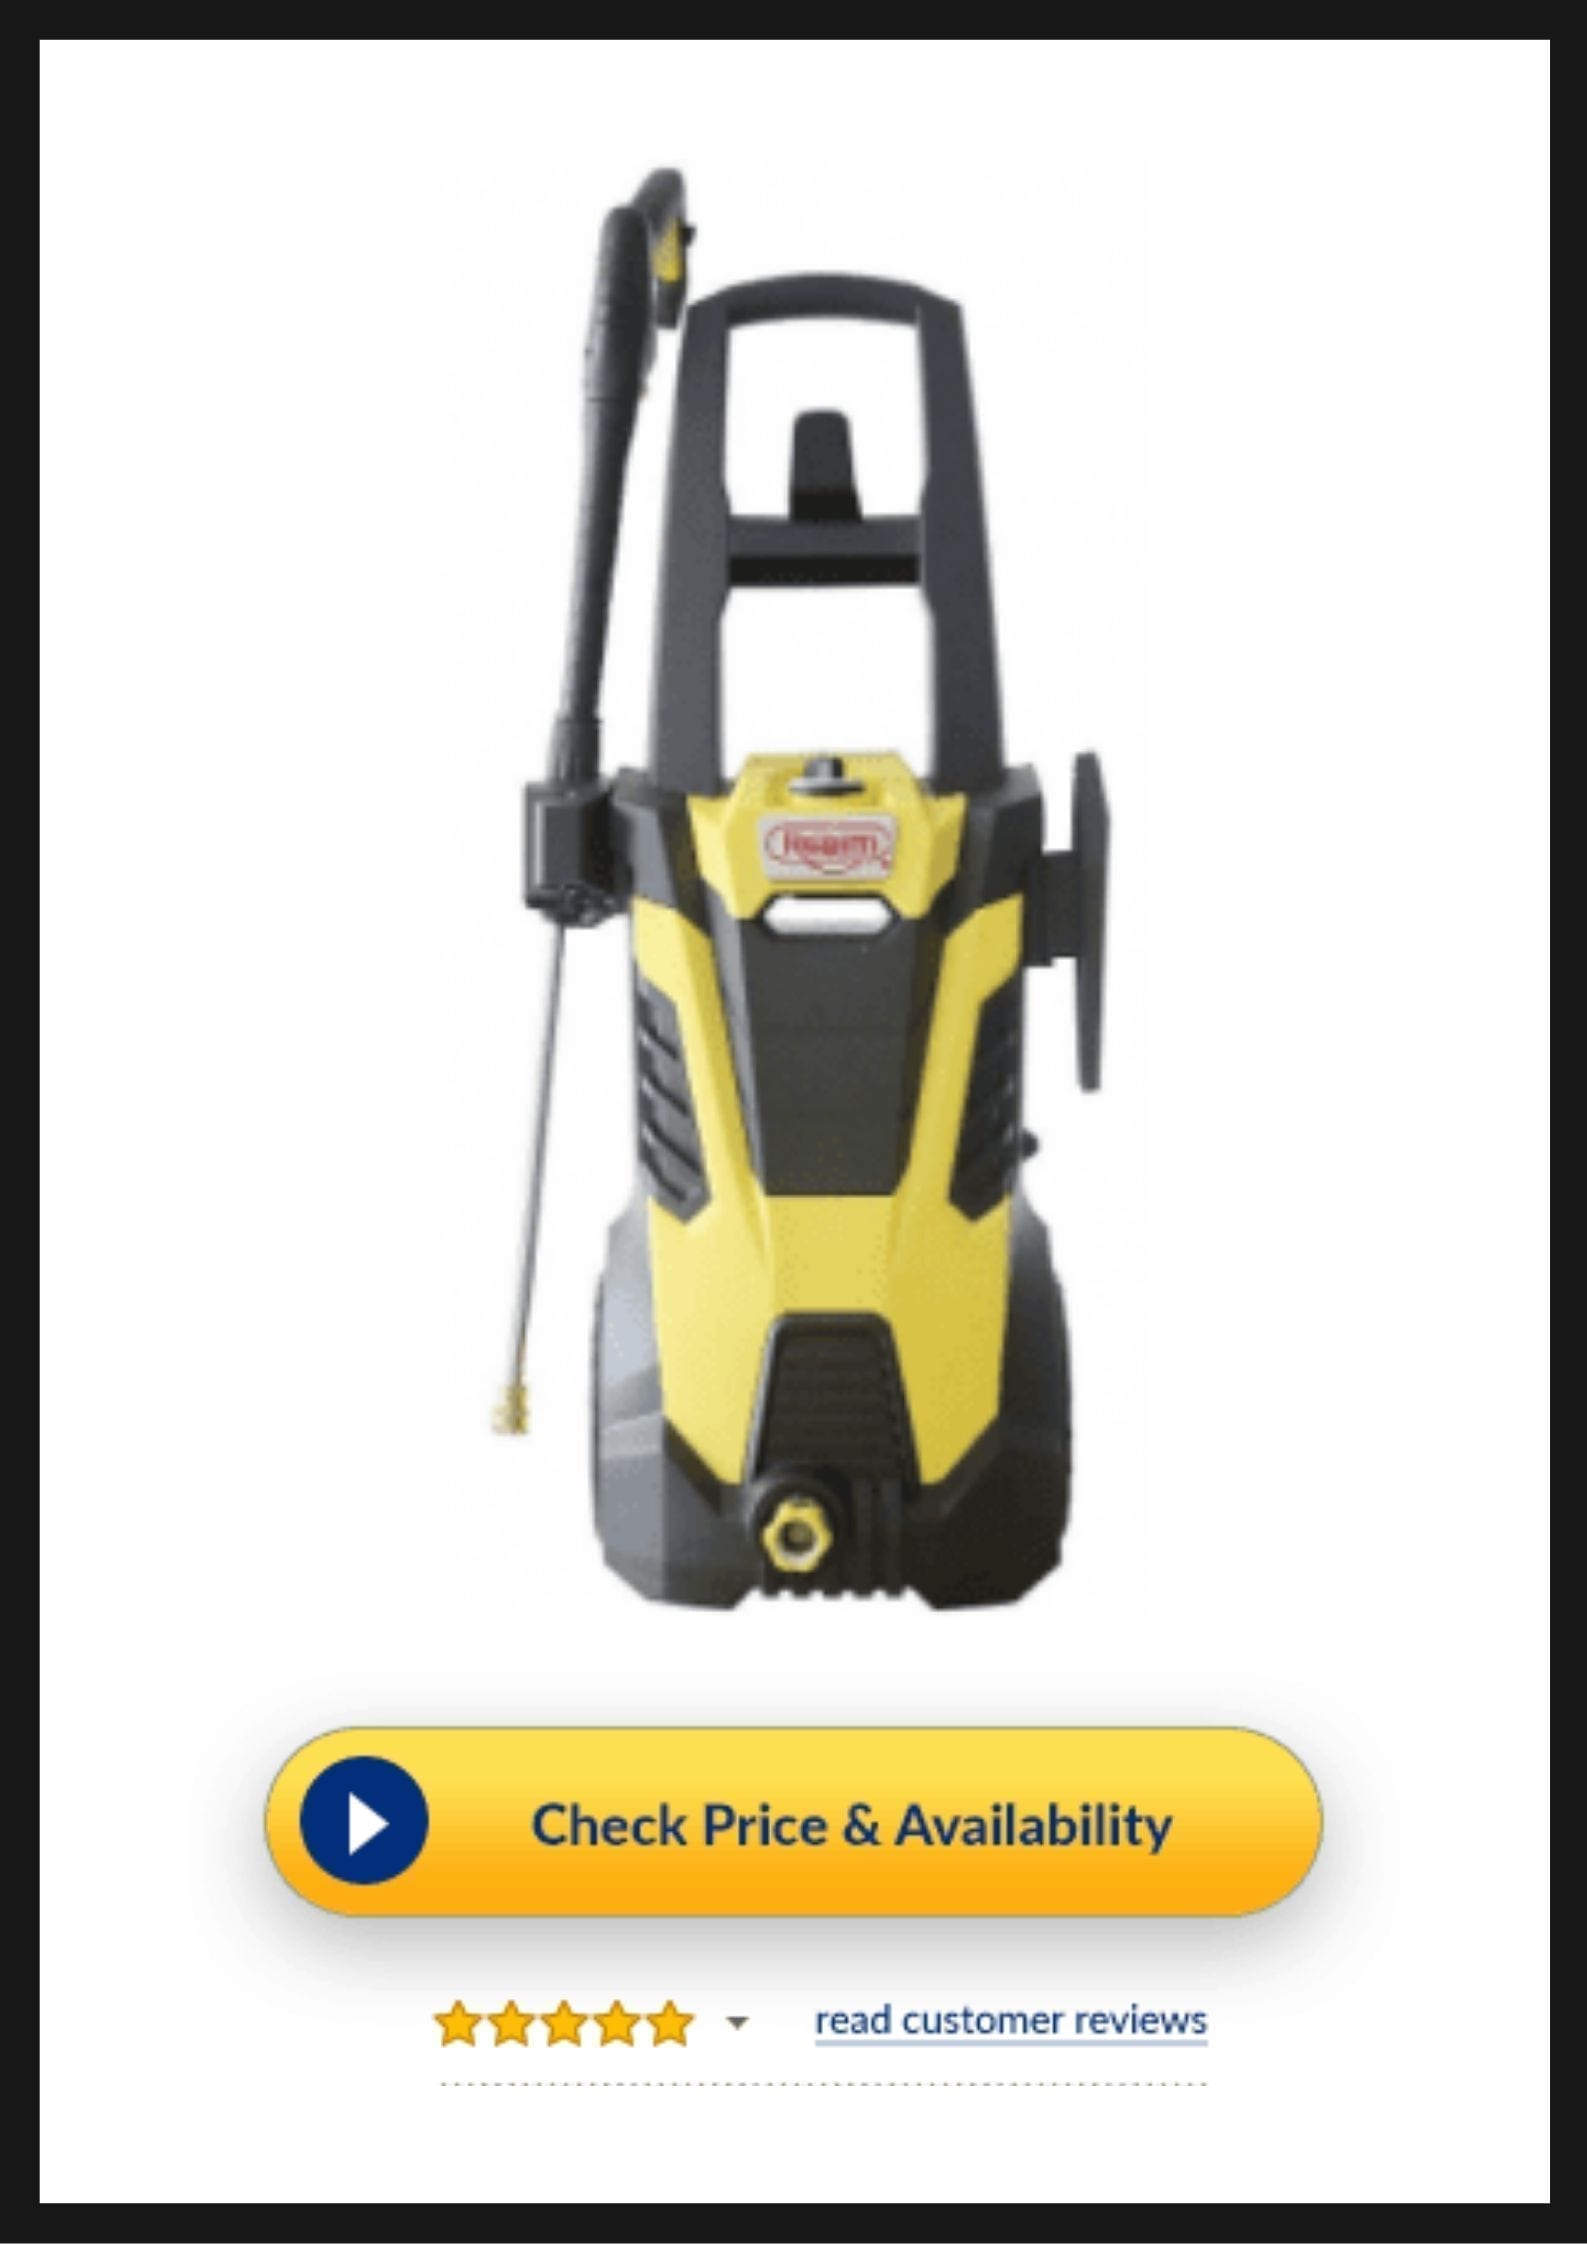 Realm 2600PSI Electric Pressure Washer